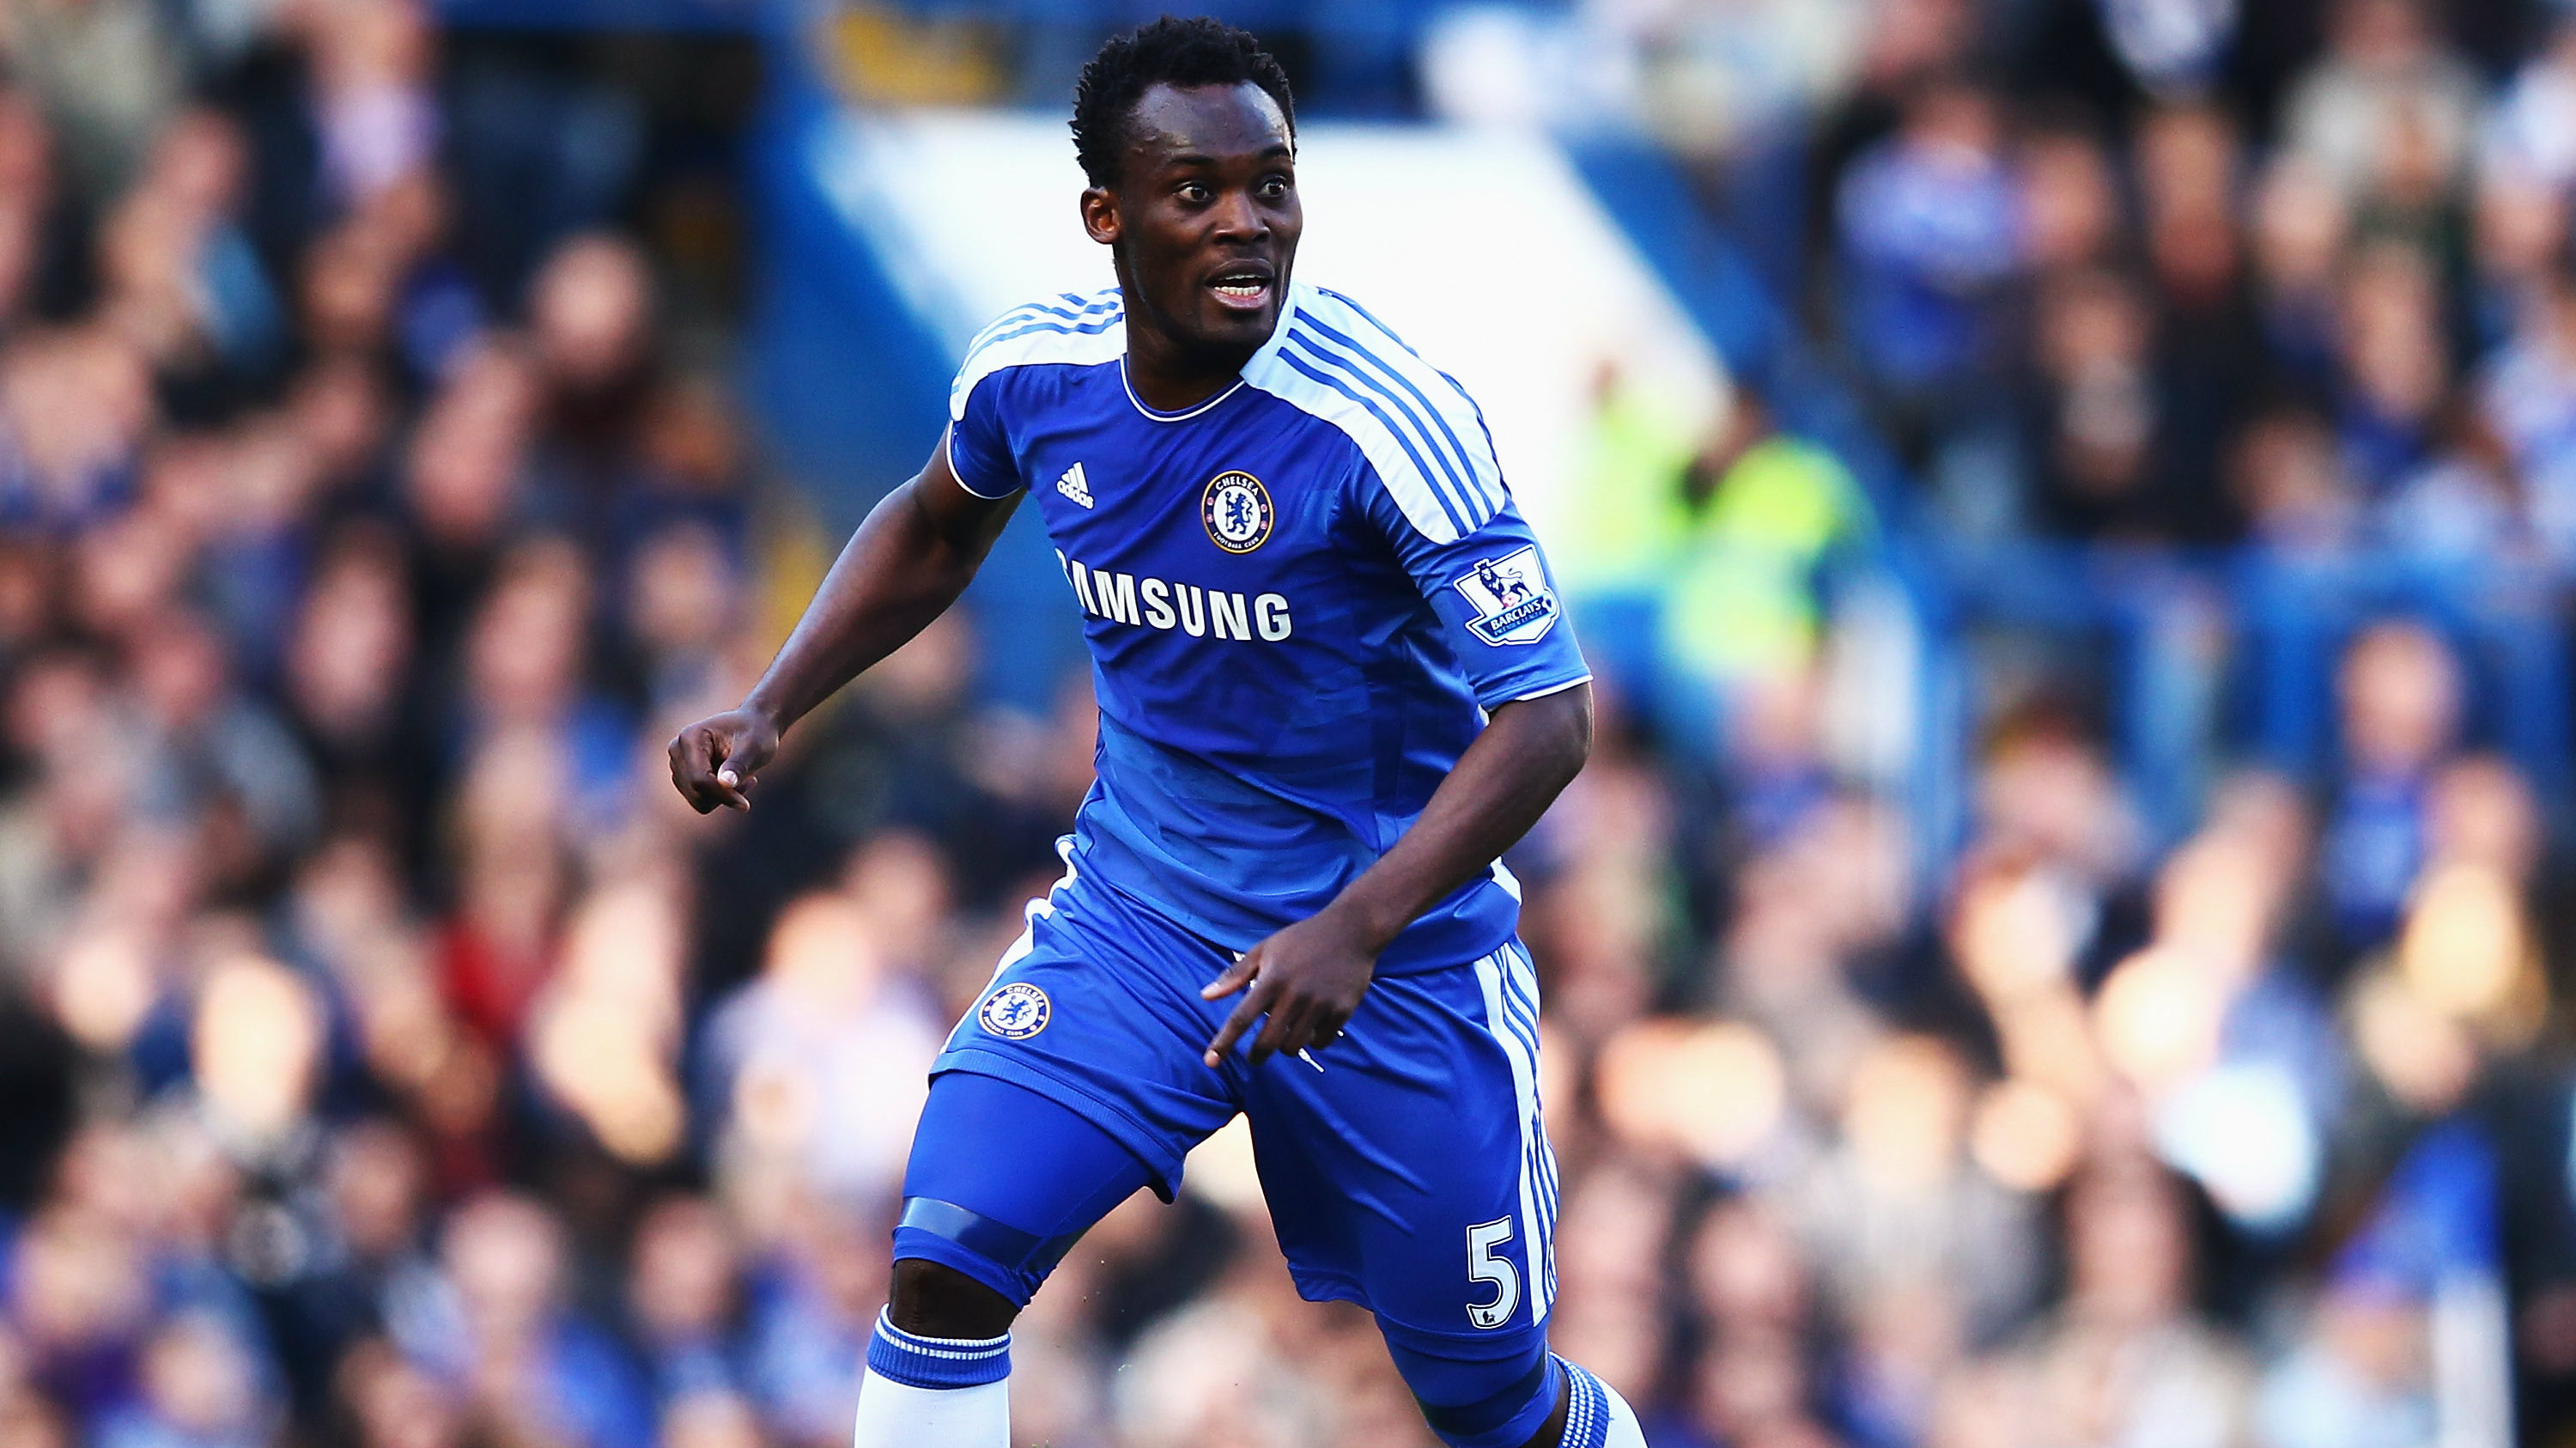 Melbourne Victory close to announcing Michael Essien deal